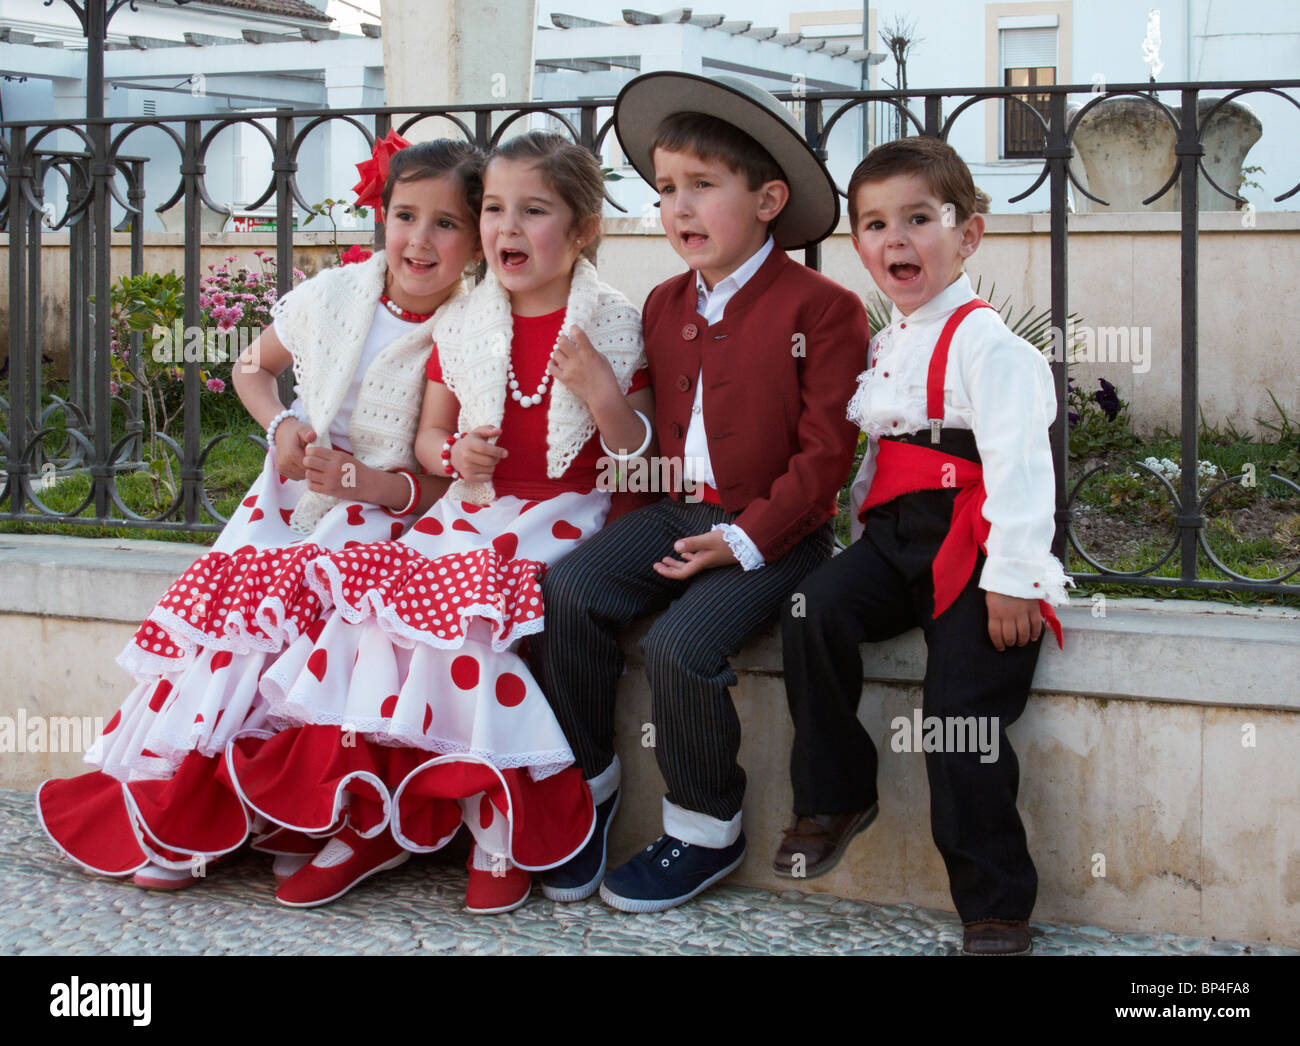 Spanish Children In Flamenco Costume Stock Photos ...